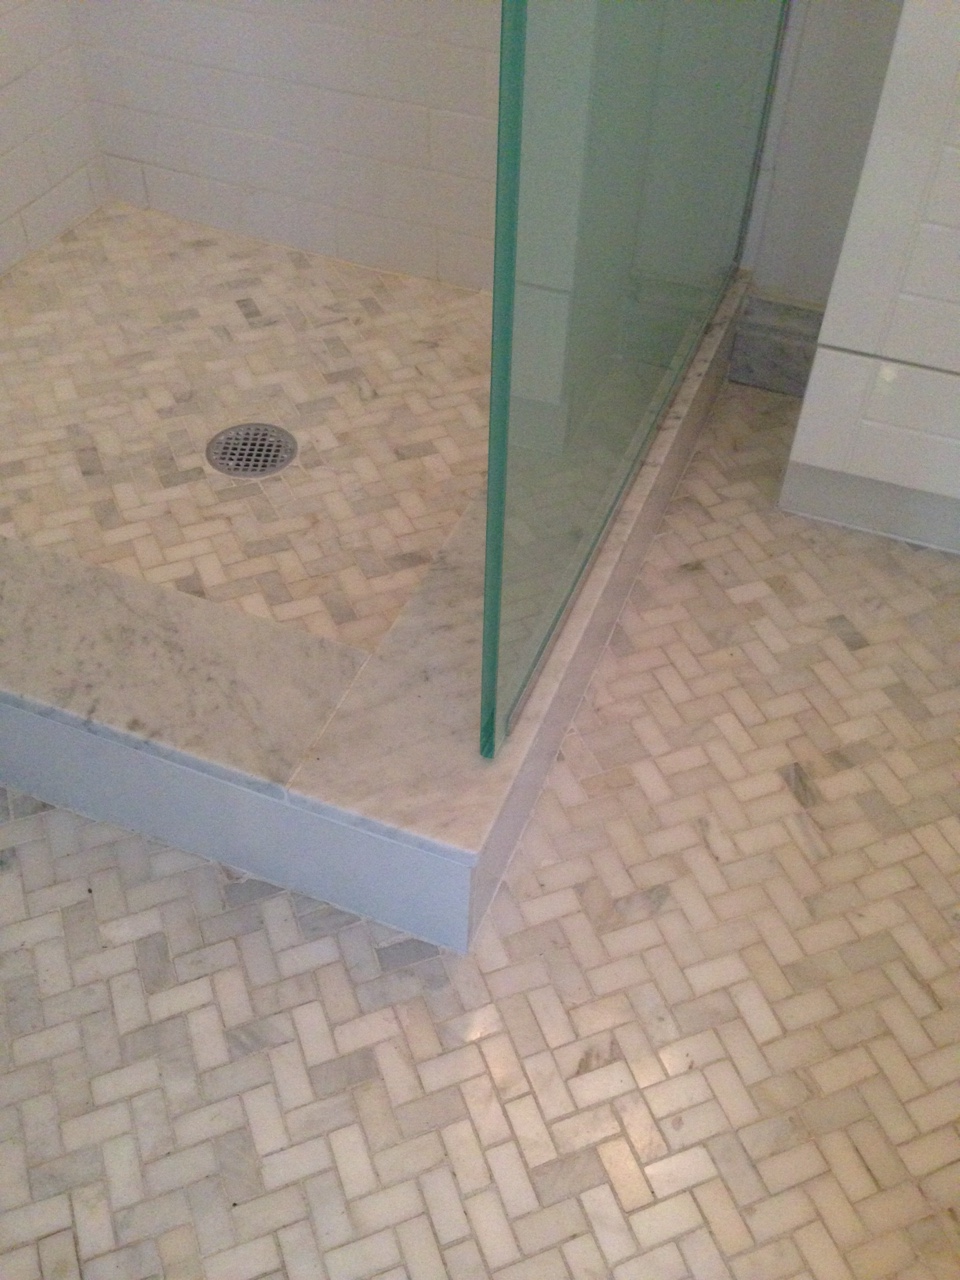 That floor and shower tile totally makes me swoon.